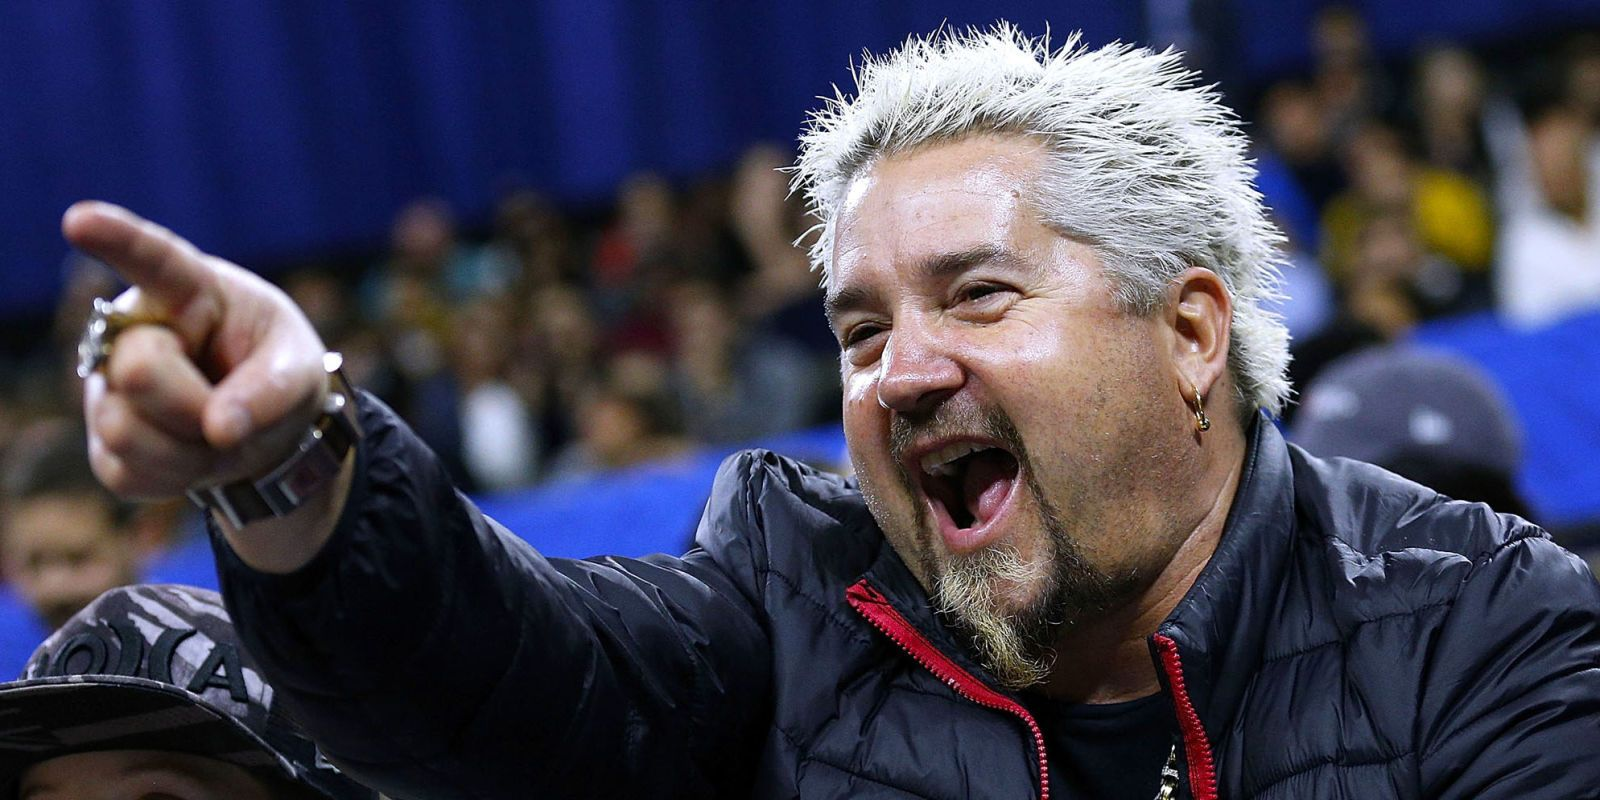 This Stand-Up Comedian Will Convince You to Love Guy Fieri